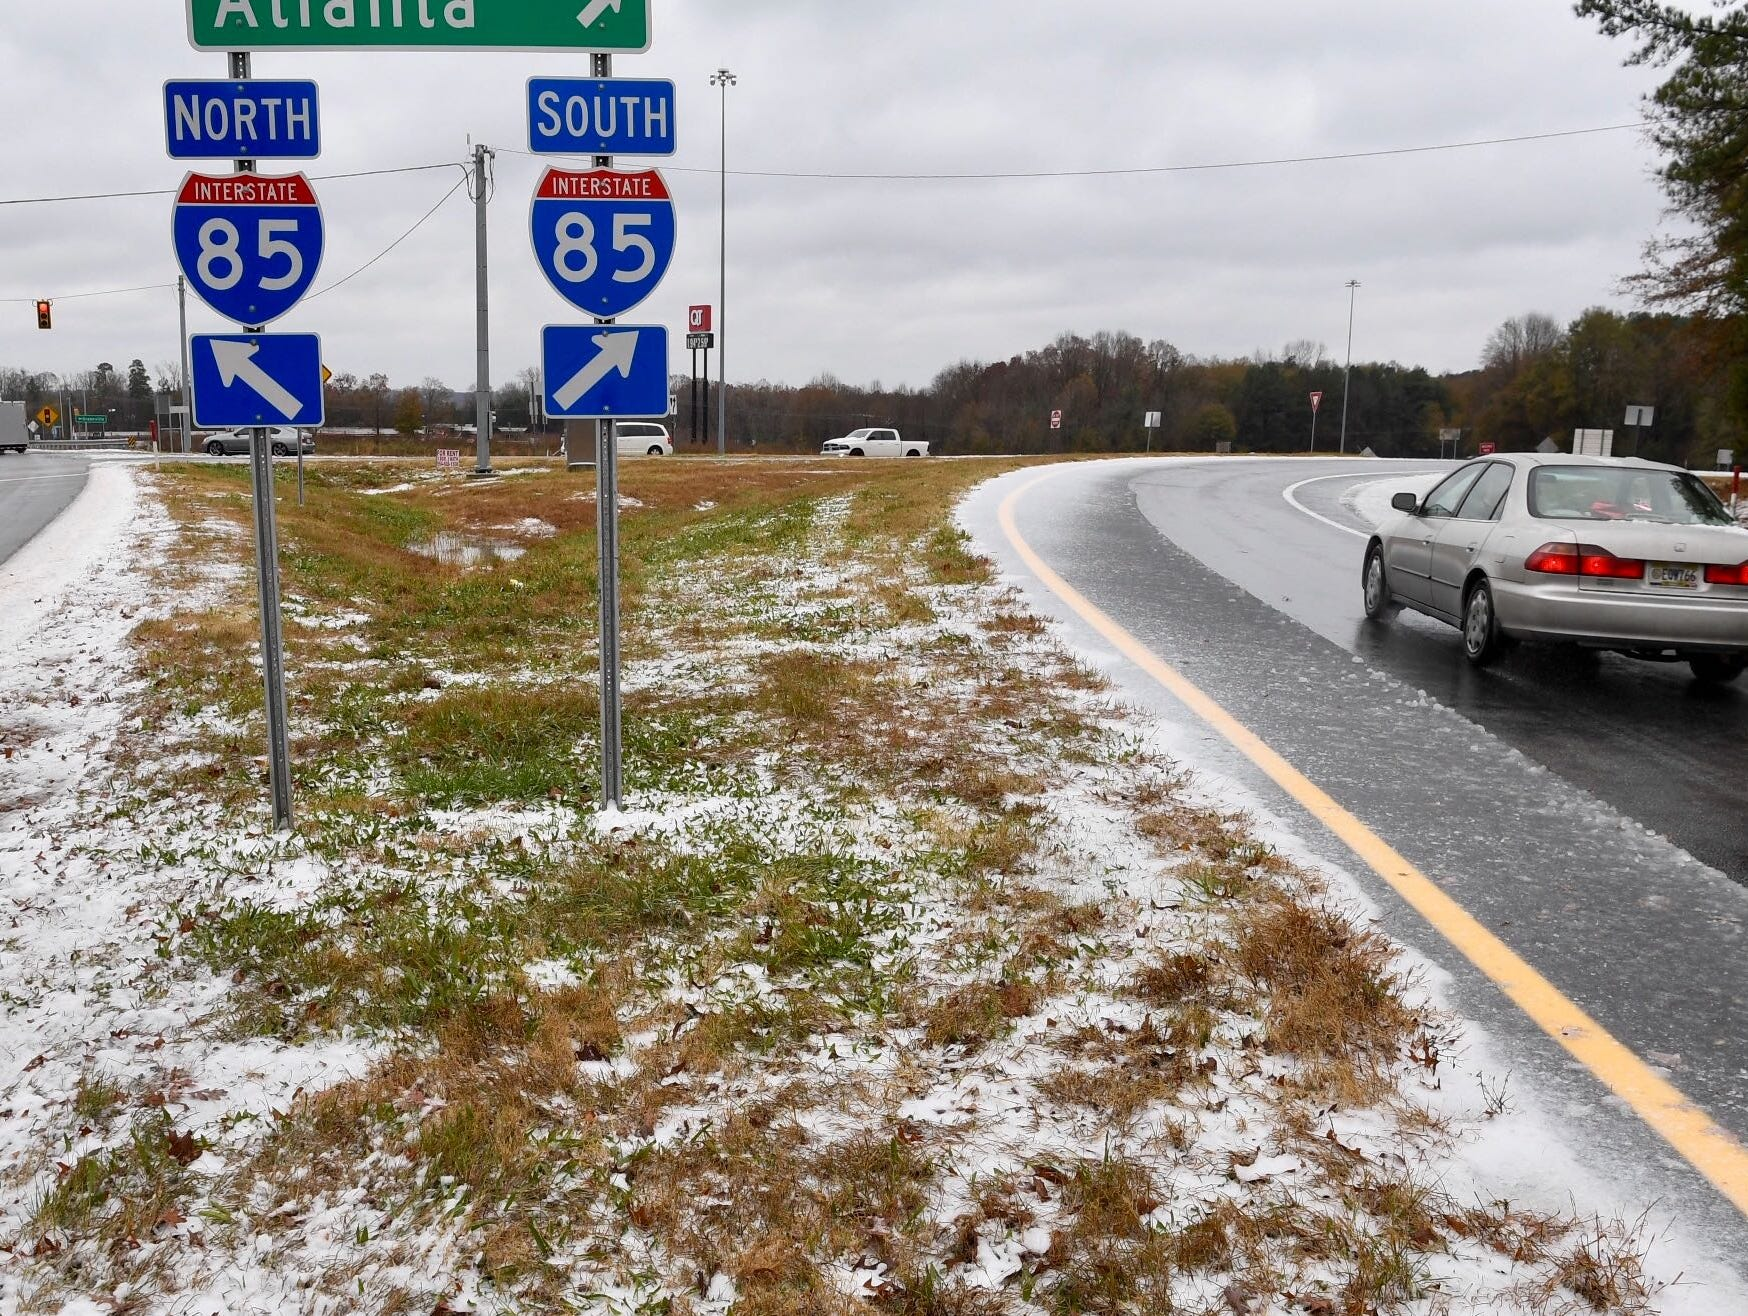 I-85 near Highway 178 (Liberty Highway) with traffic and SCDOT snowplows taking turns trading off scraping roads on Sunday, Dec. 9, 2018.